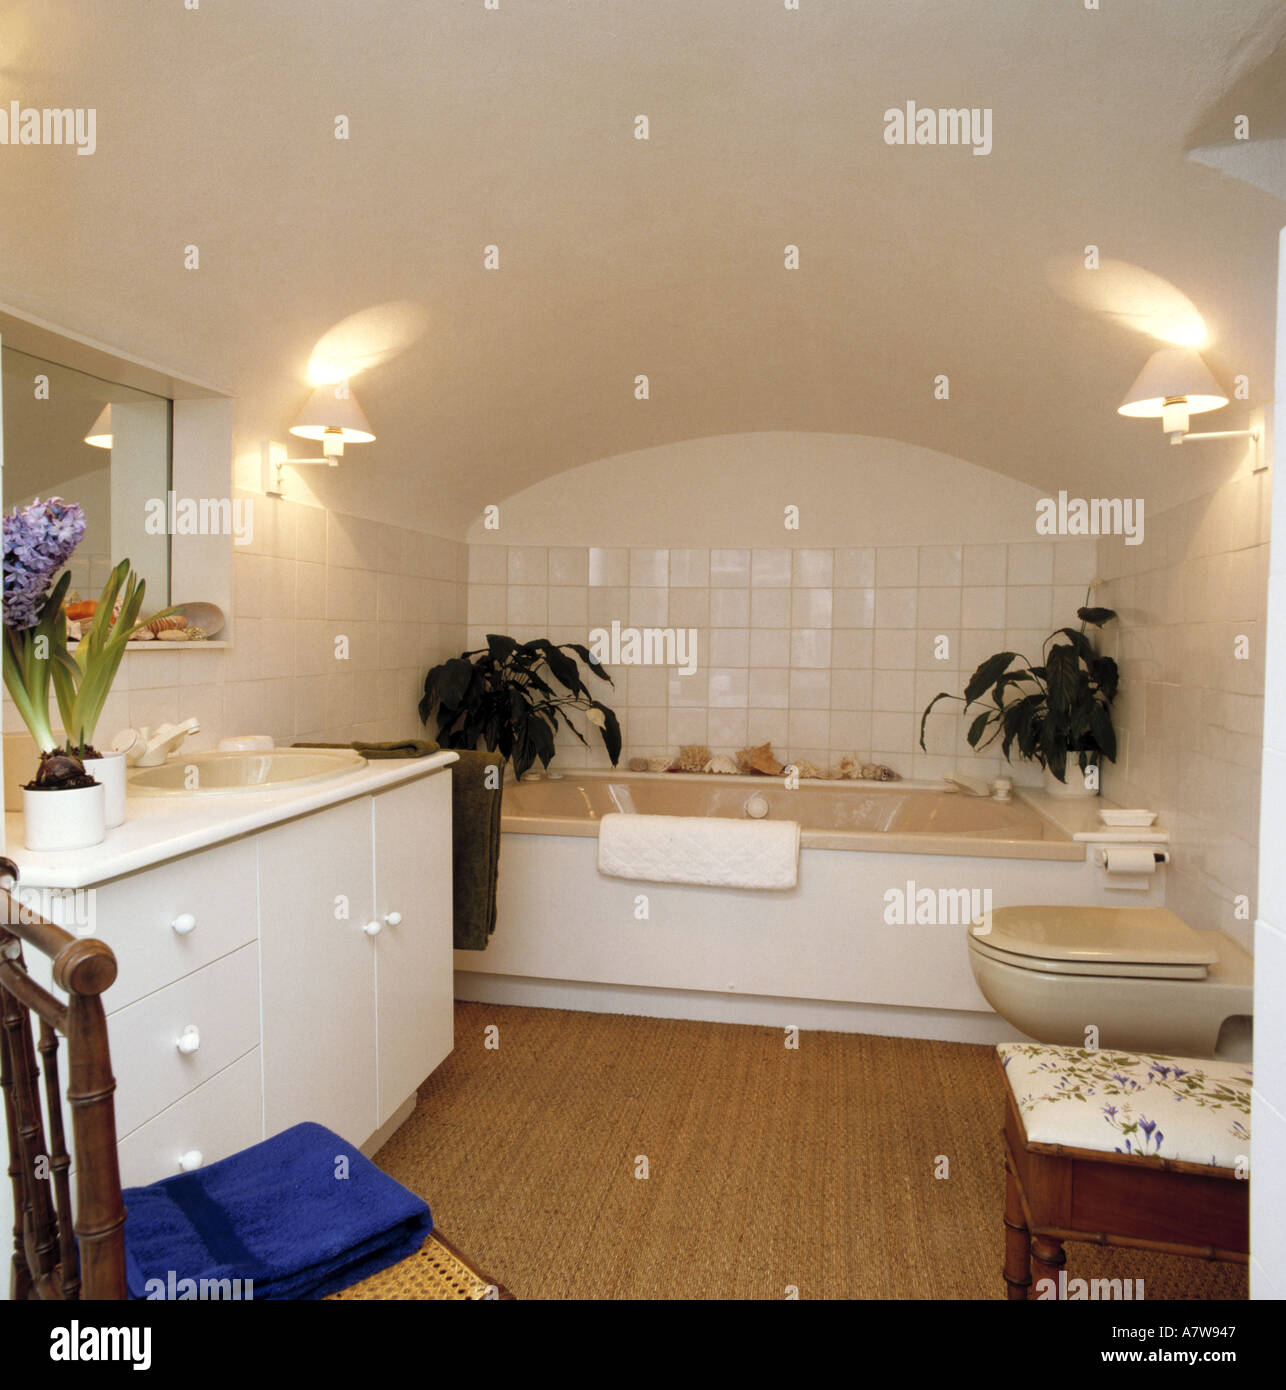 Sisal Carpet And Green Houseplants In White Tiled Basement Bathroom With  Lighted Wall Lights And Curved Ceiling